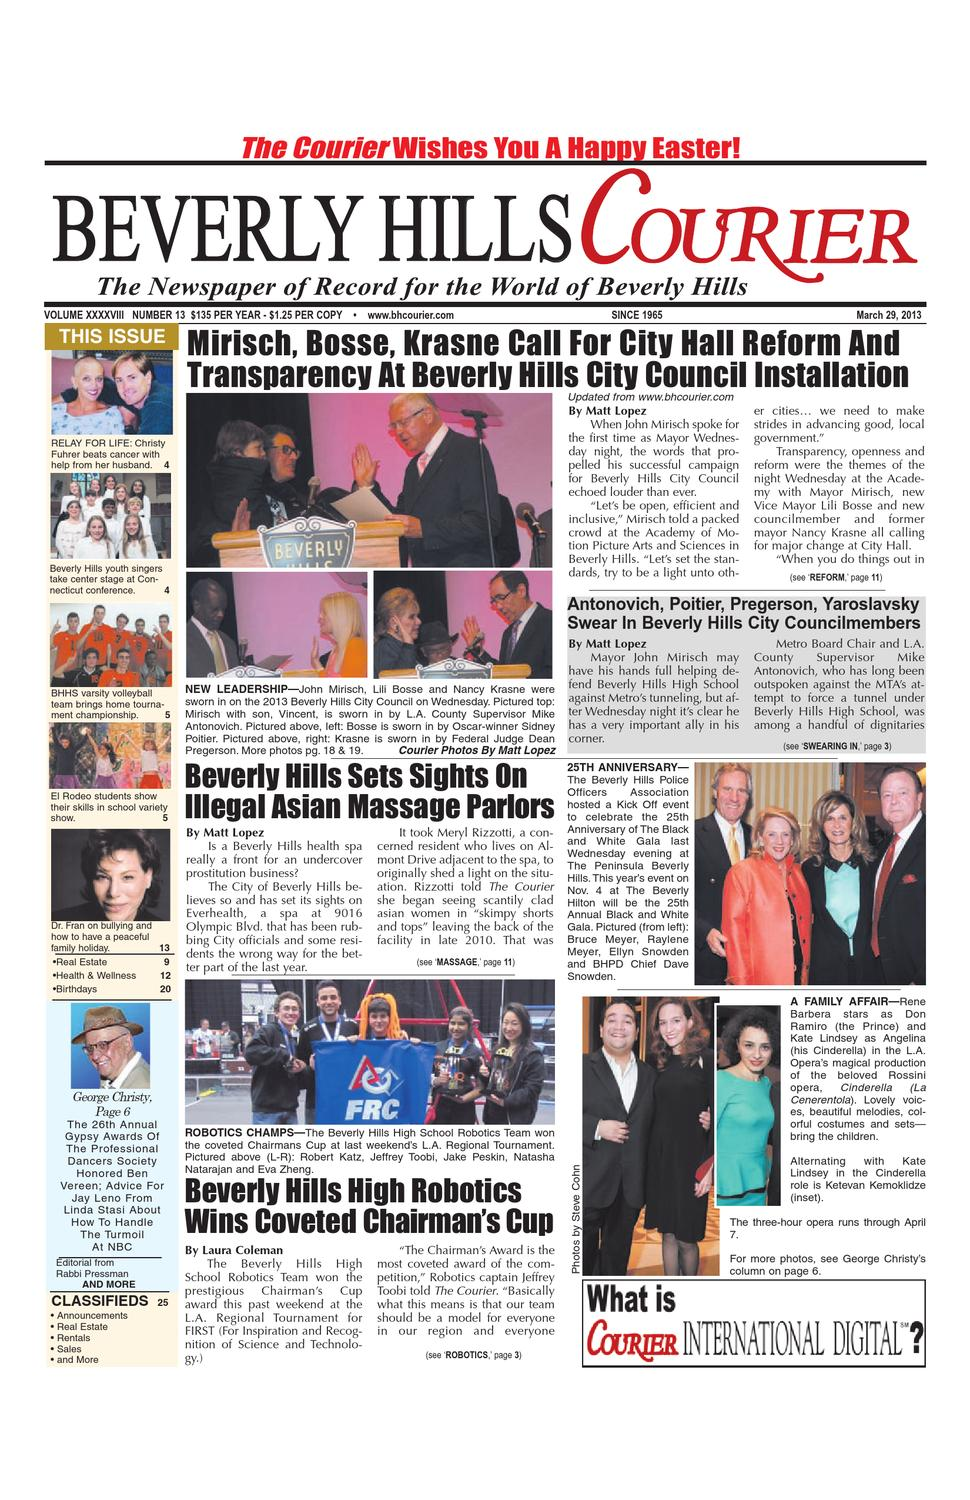 BH Courier 03-29-13 E-edition by The Beverly Hills Courier - issuu